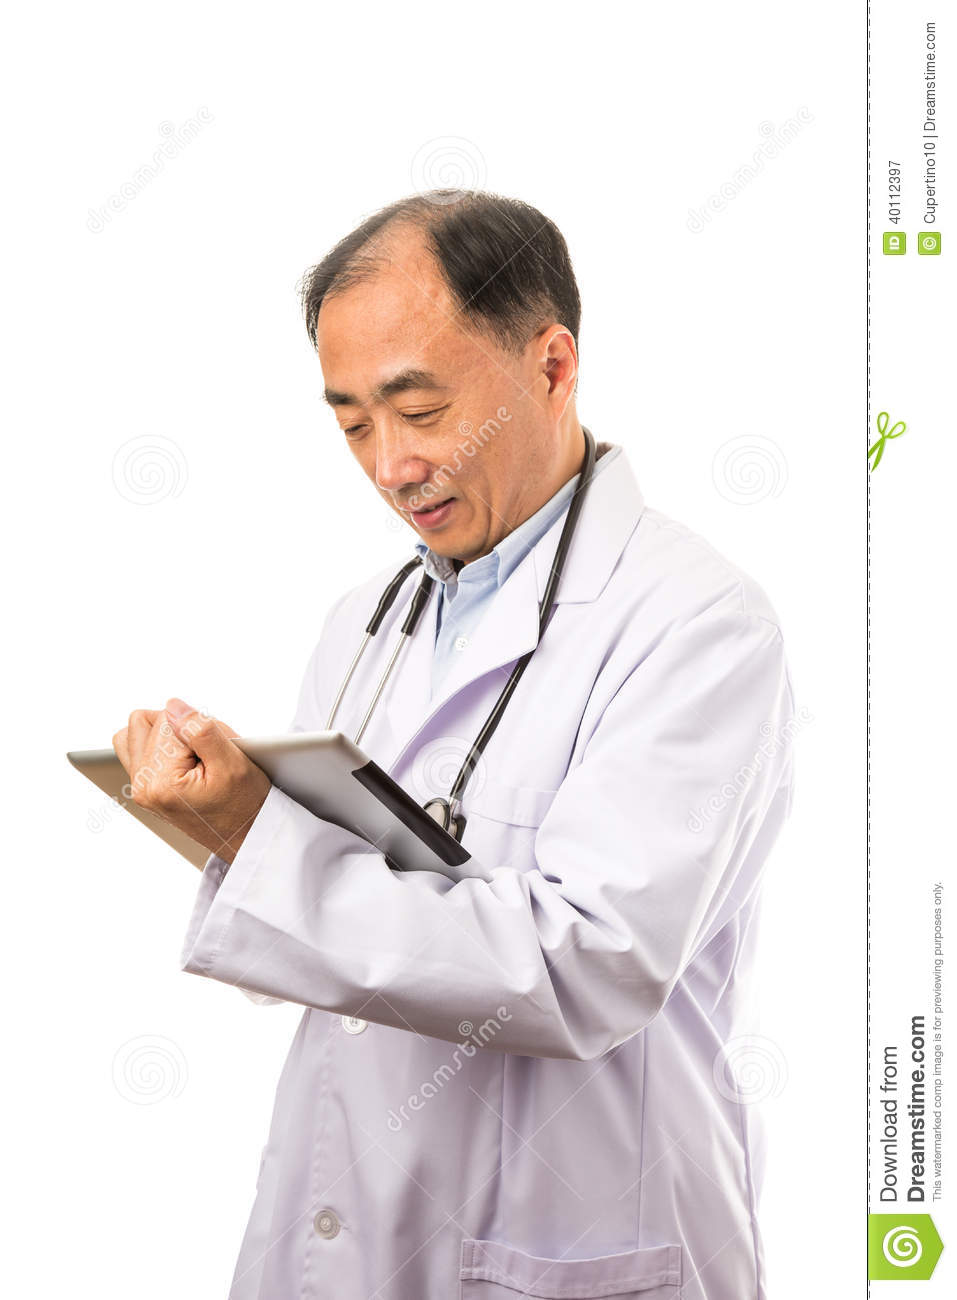 Really. And Asian male doctor think